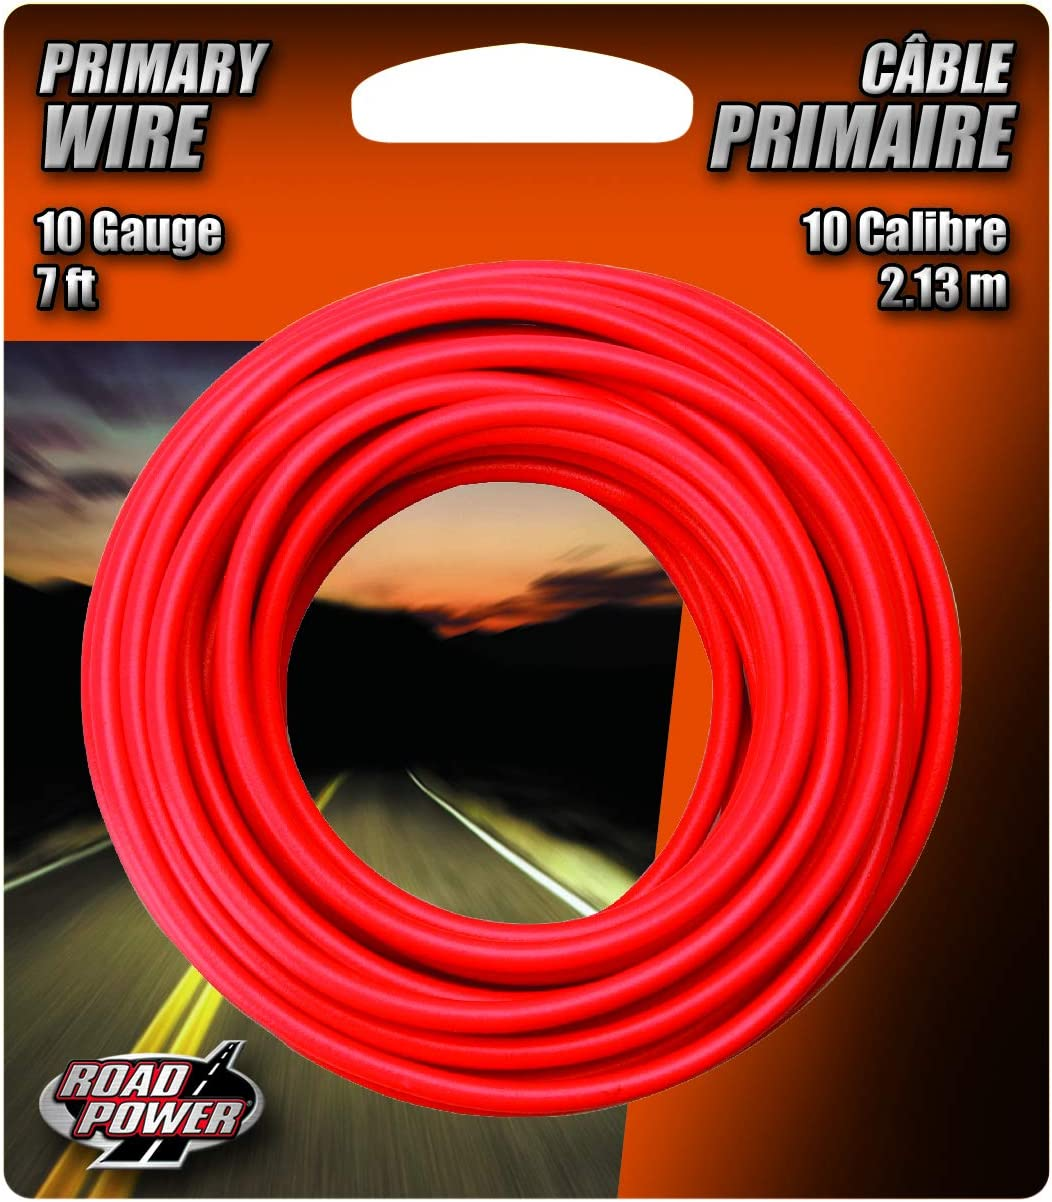 Road Power 55672133 10-Gauge 7-Foot Automotive Copper Wire, Red